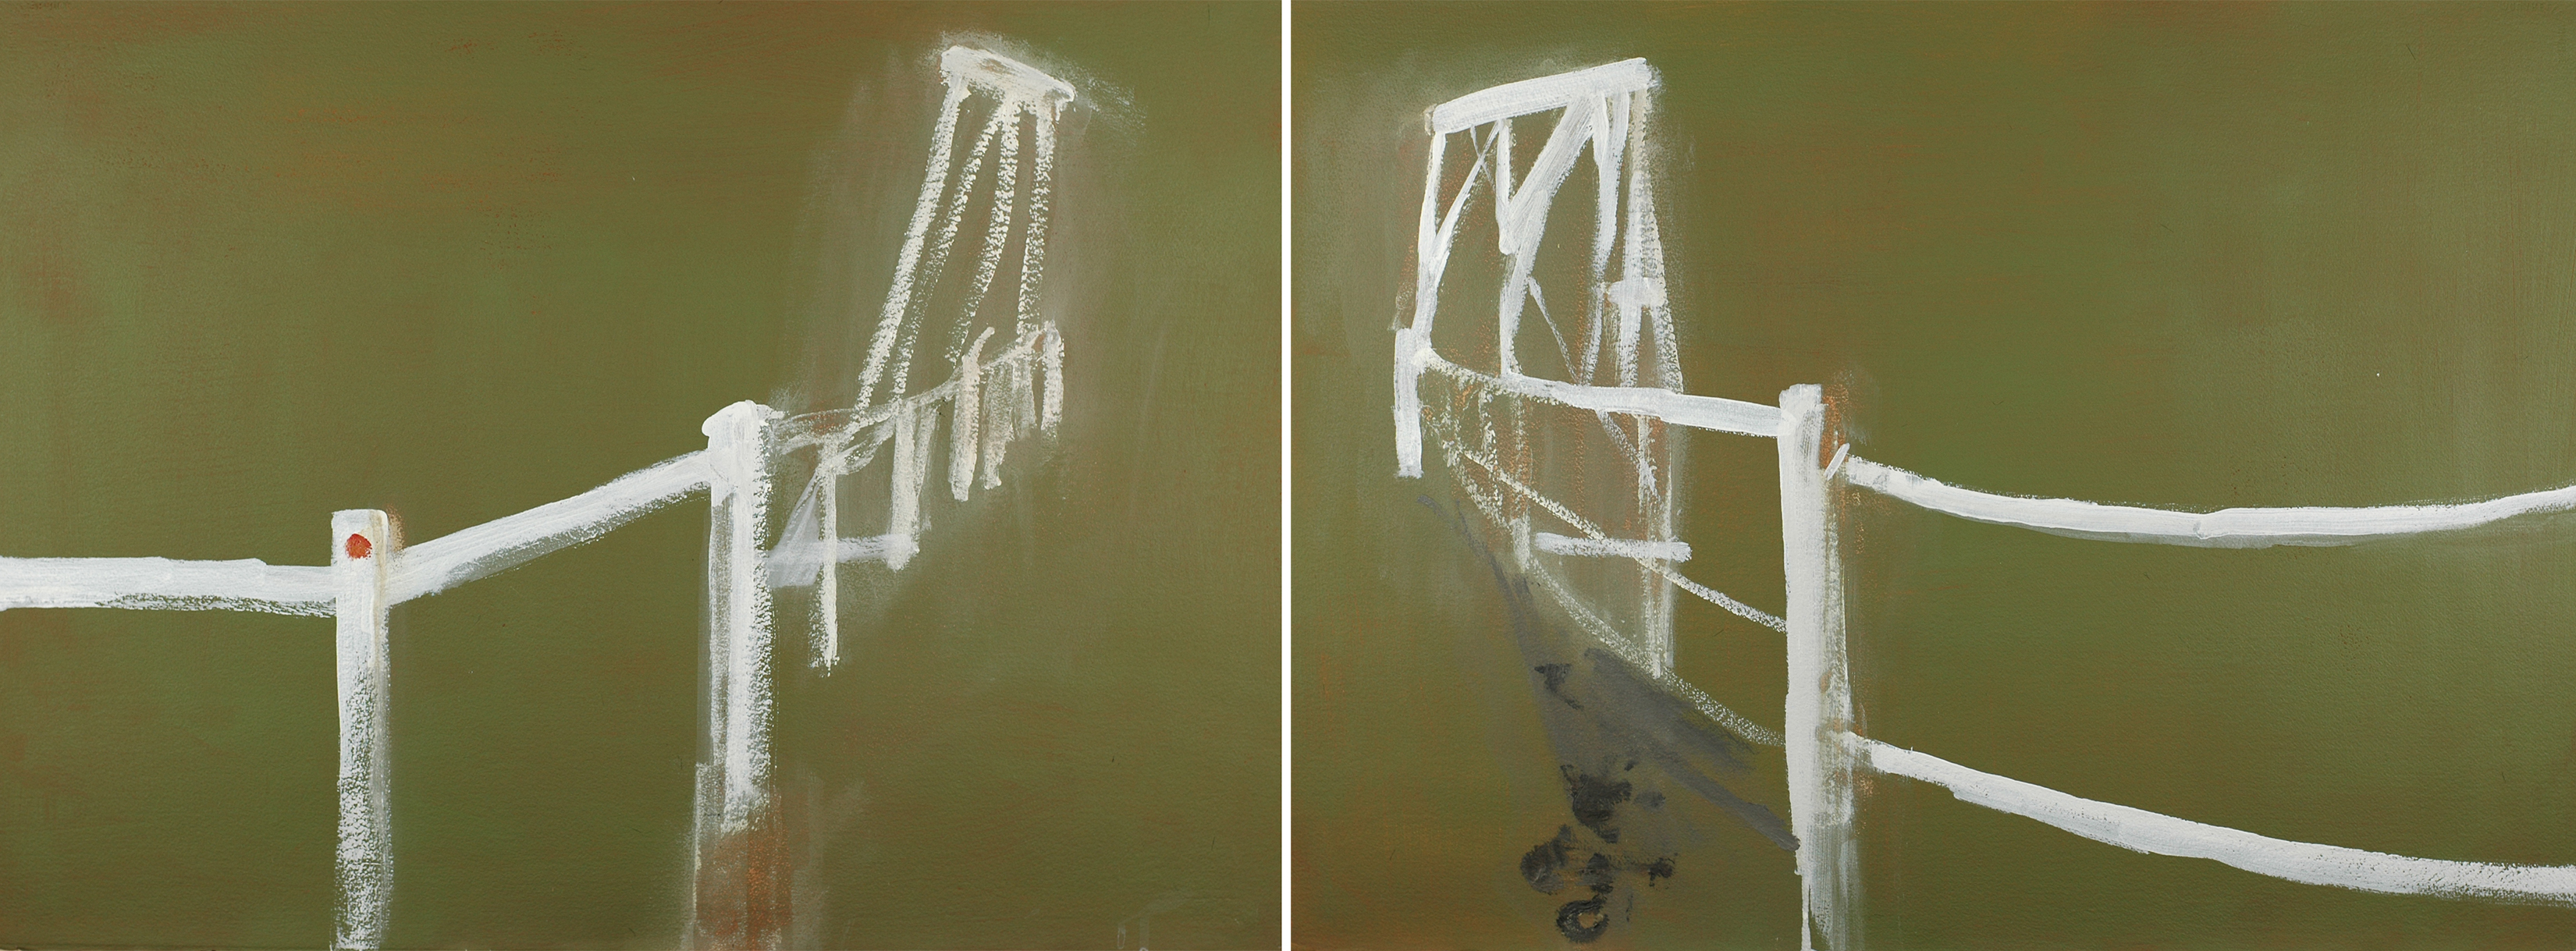 Towamba, Wooden Bridge Diptych, 2010